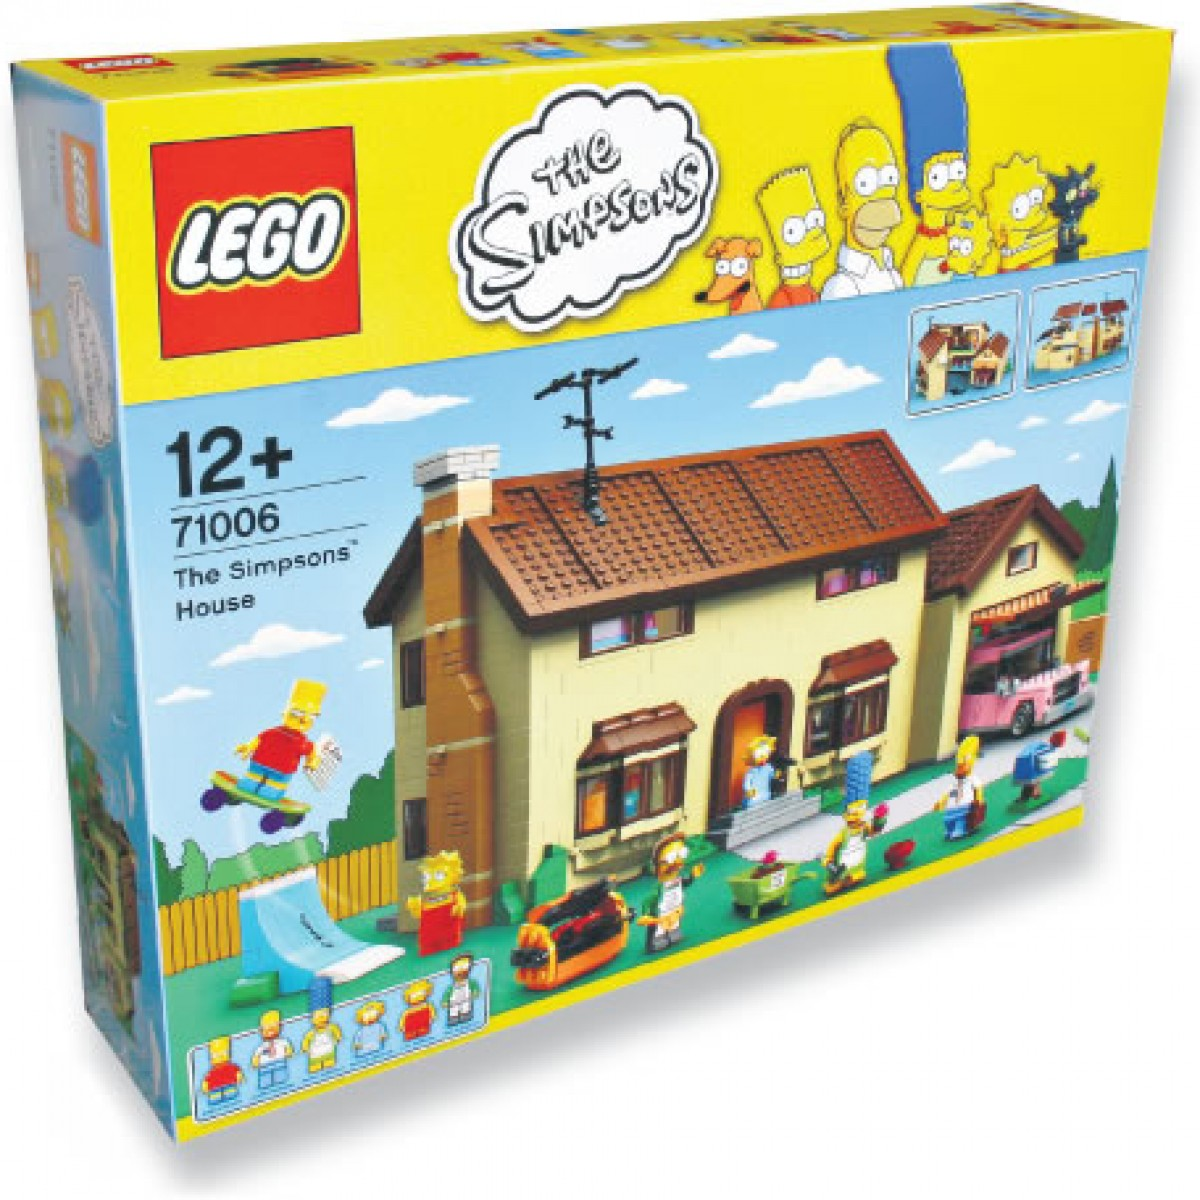 Lego and The Simpsons – Encouraging the Builders of Tomorrow